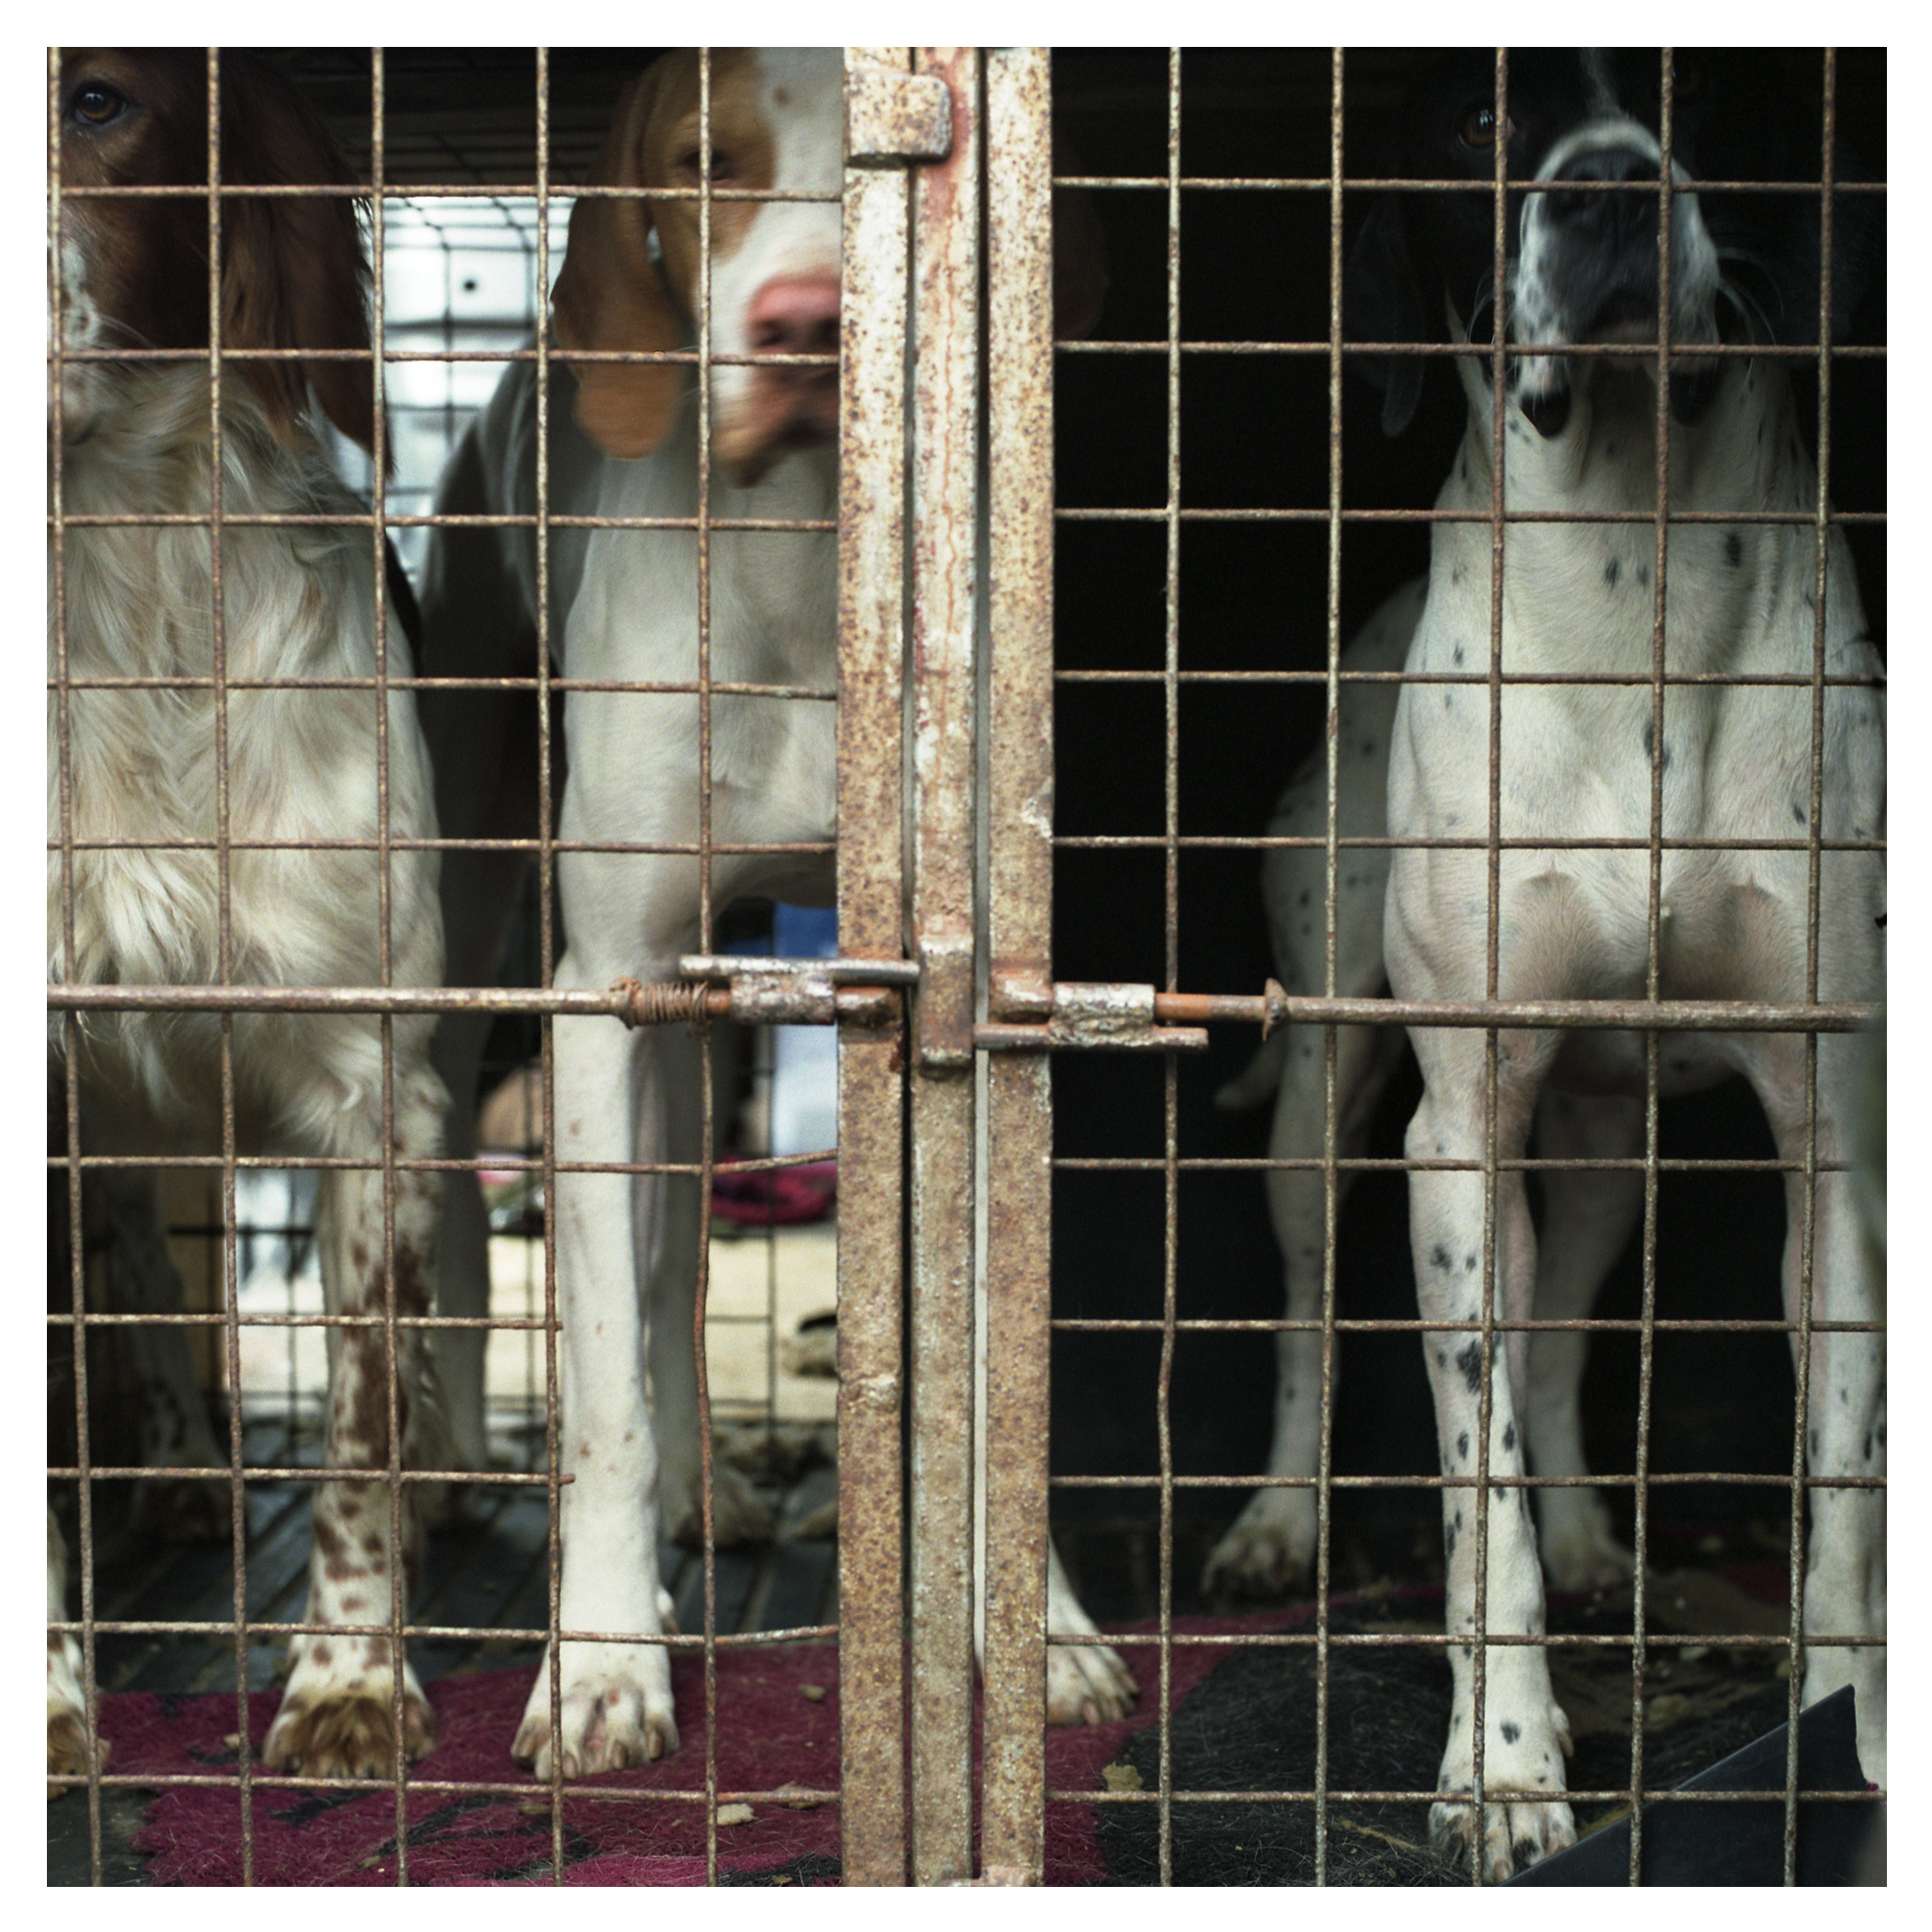 Pointer dogs waiting to be released for the days competition.